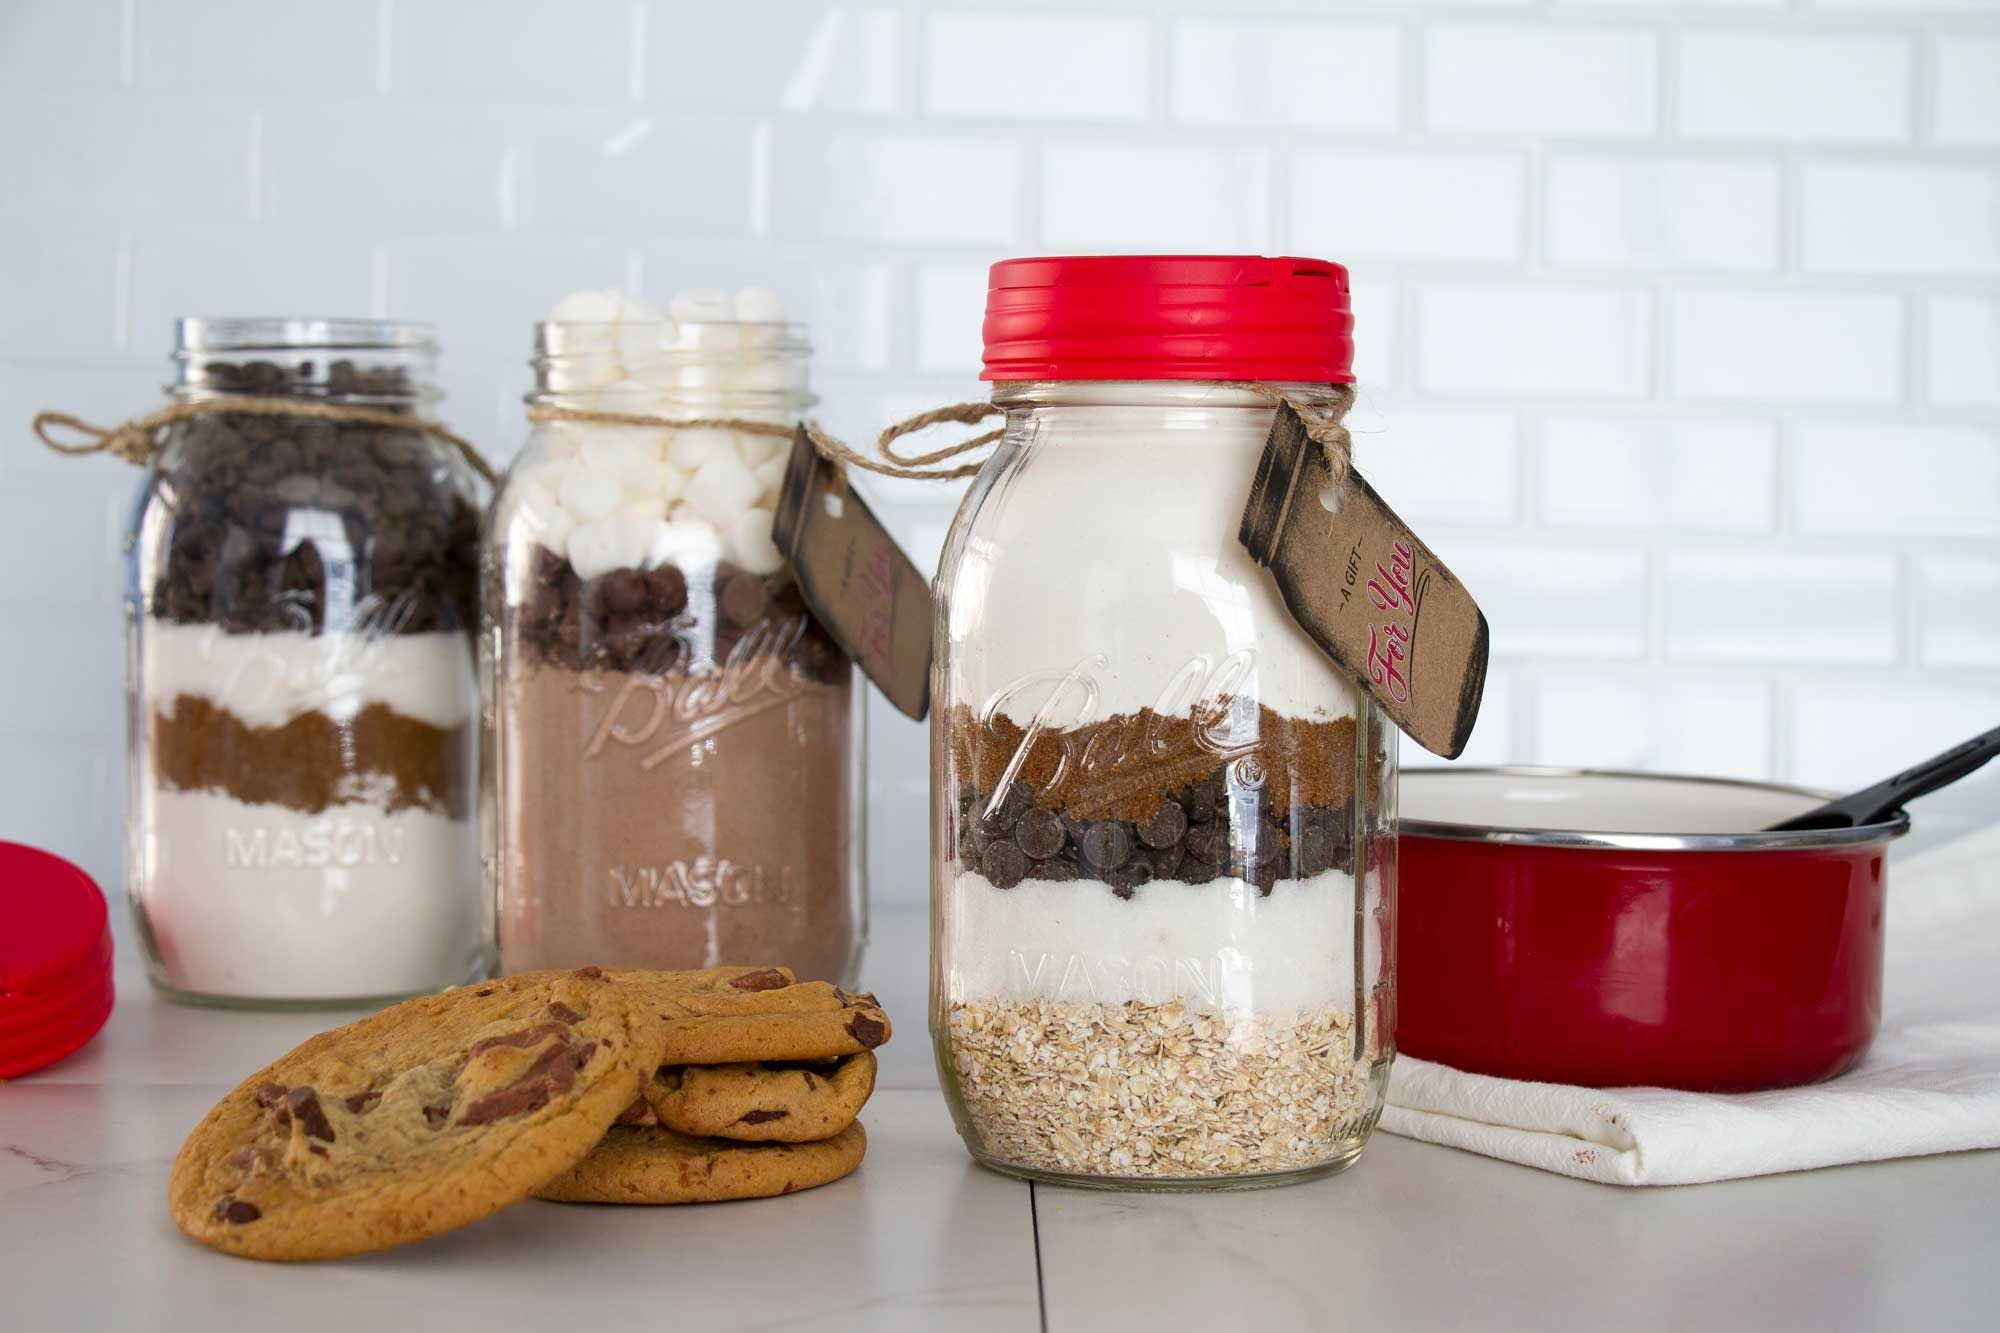 DIY Cookie Mix Gifts in Mason Jars recipe.